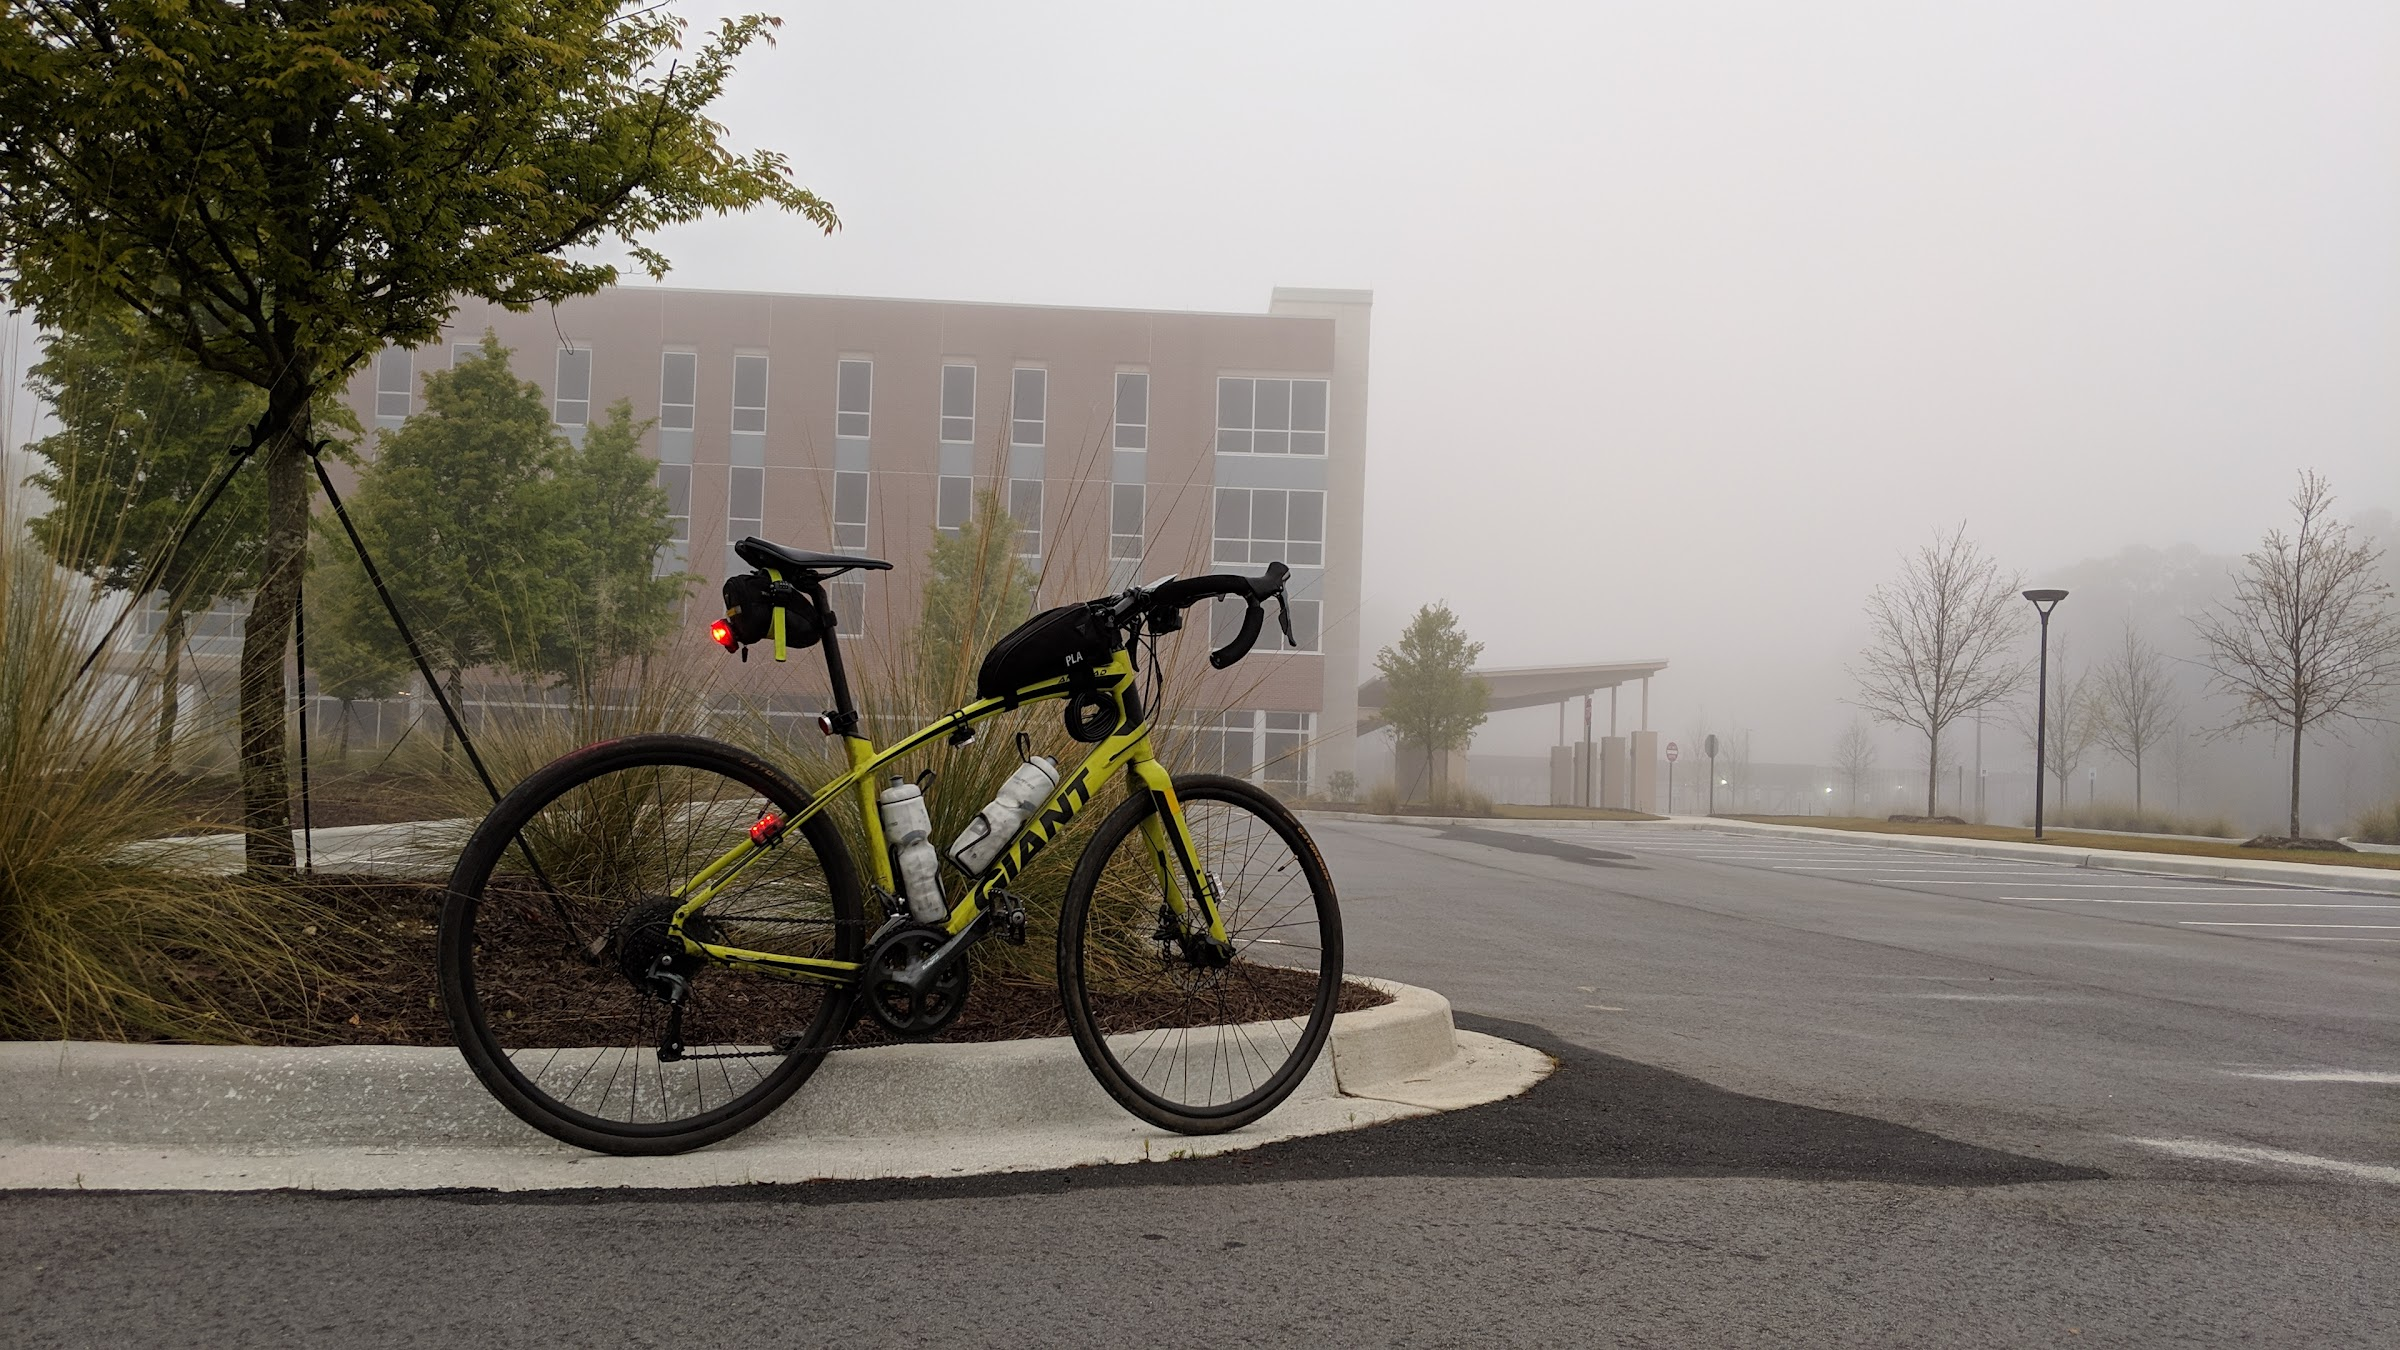 Foggy bicycle